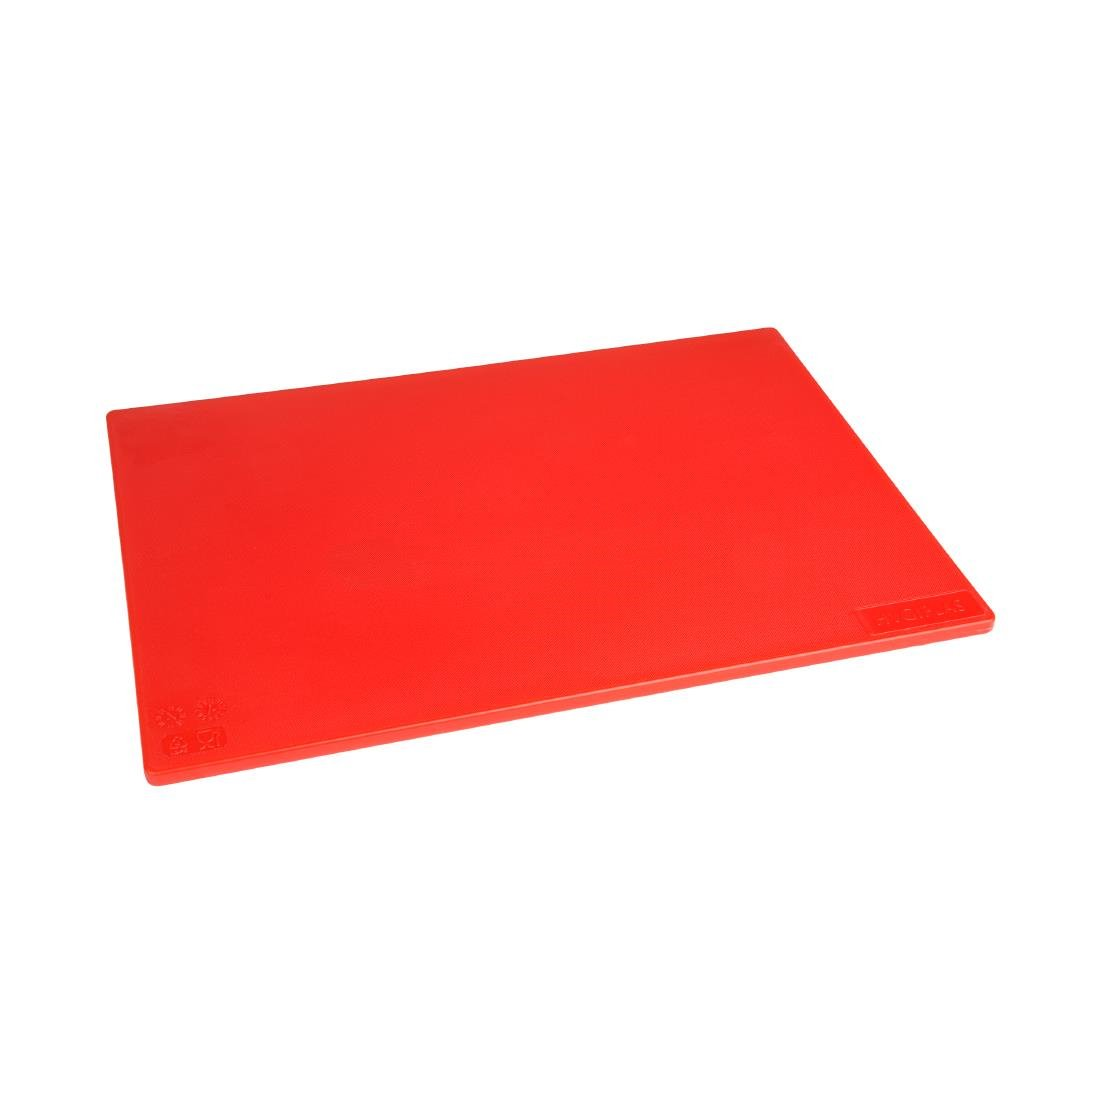 Hygiplas Anti-bacterial Low Density Chopping Board Red - 450x300x12mm